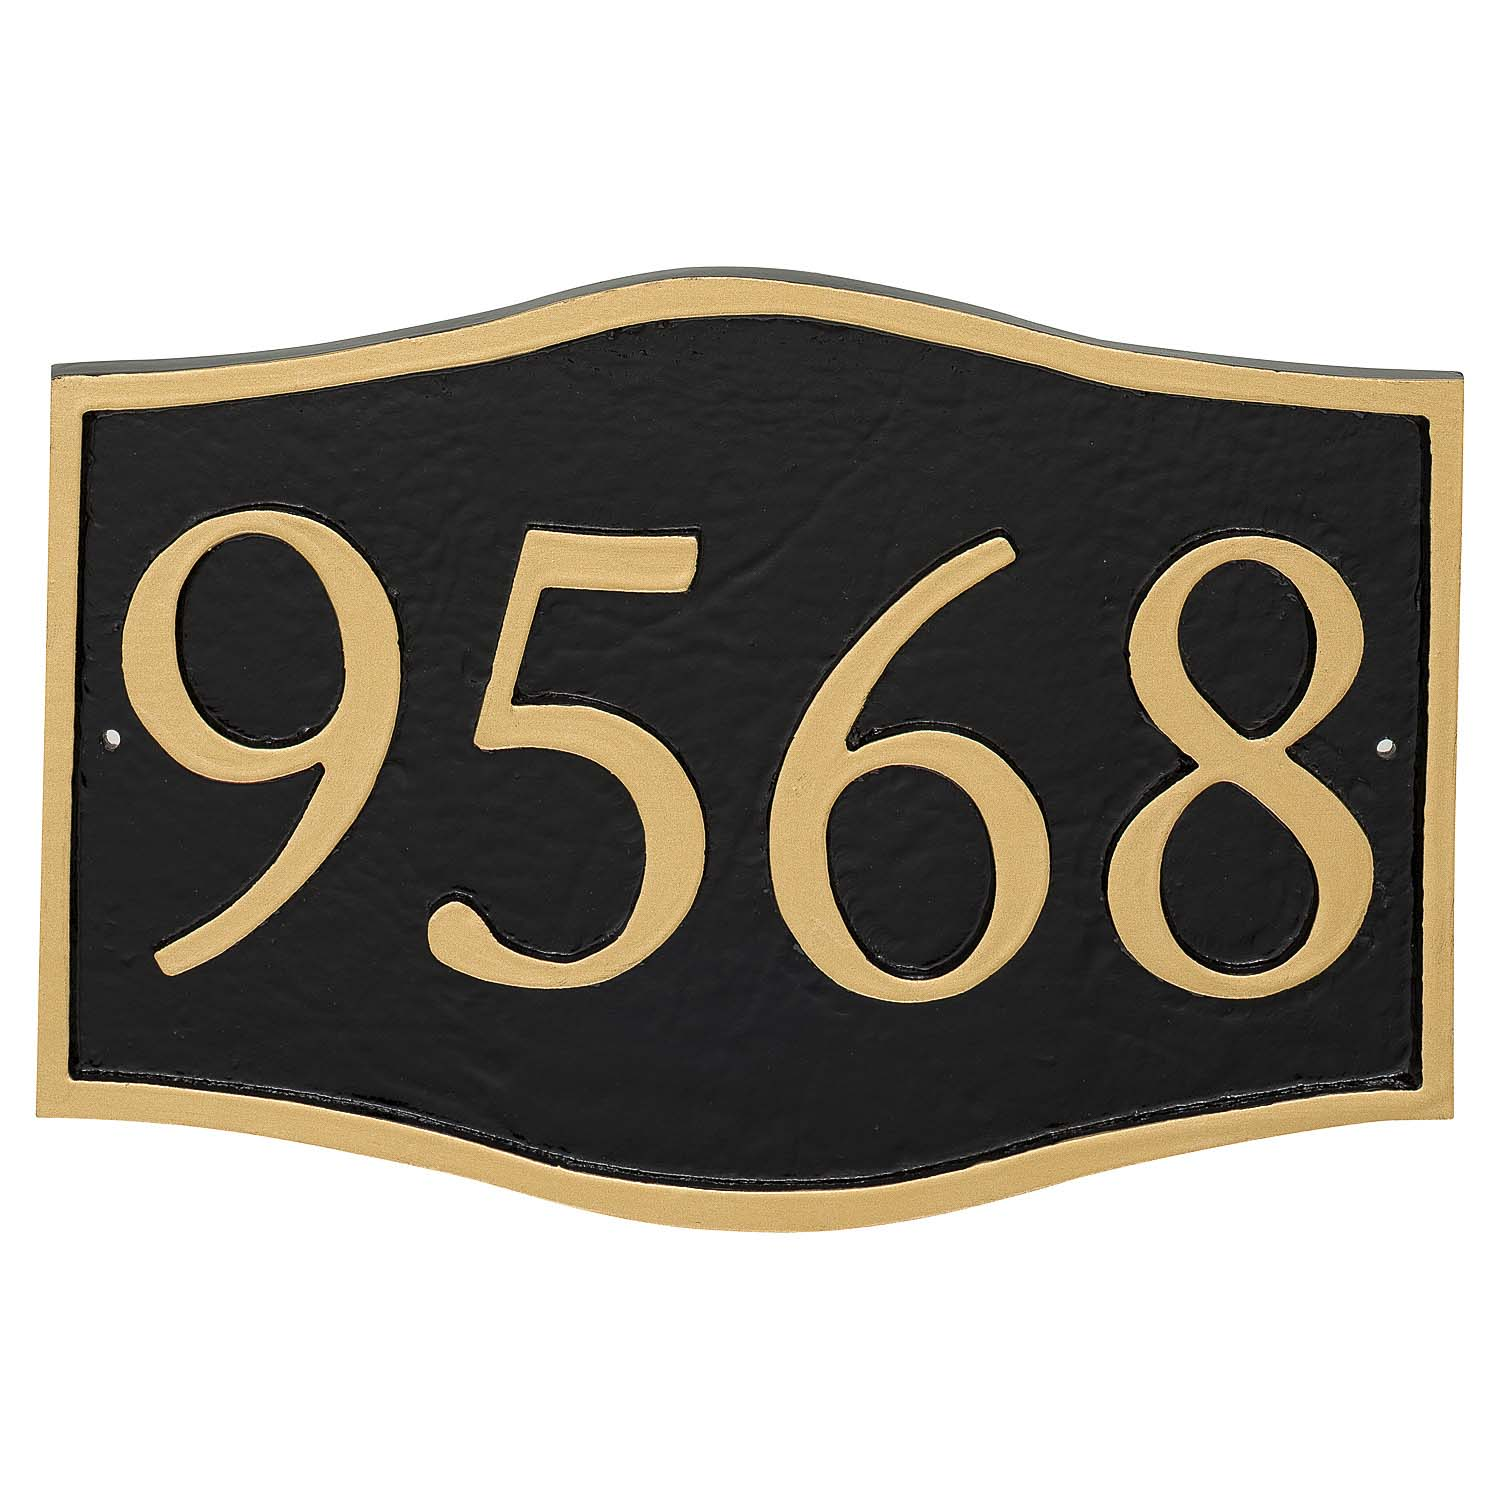 Double Arch Serif Economy Address Plaque (holds 4 characters)